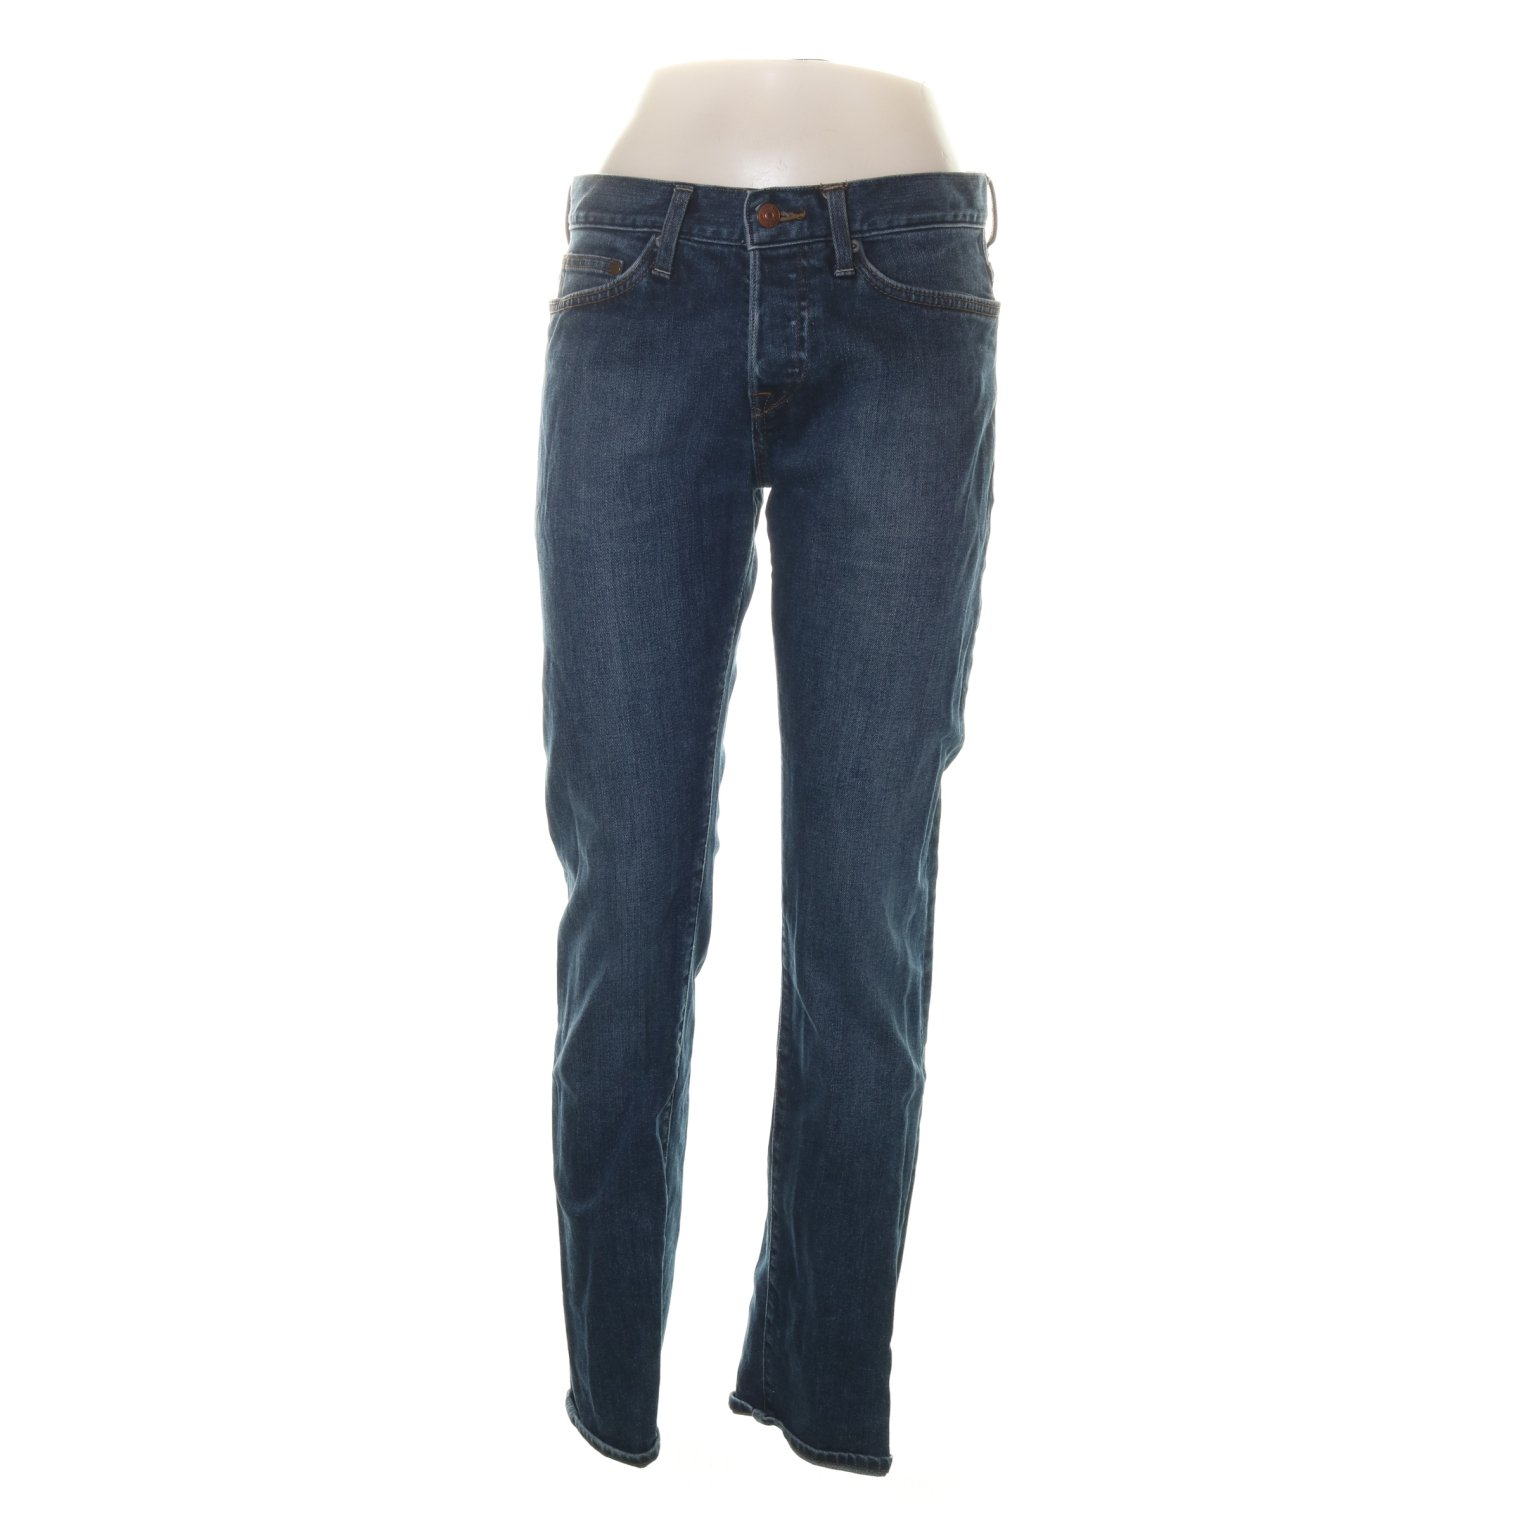 &Denim by H&M, Jeans, Strl: 29/34, 29/32, Blå, Bomull